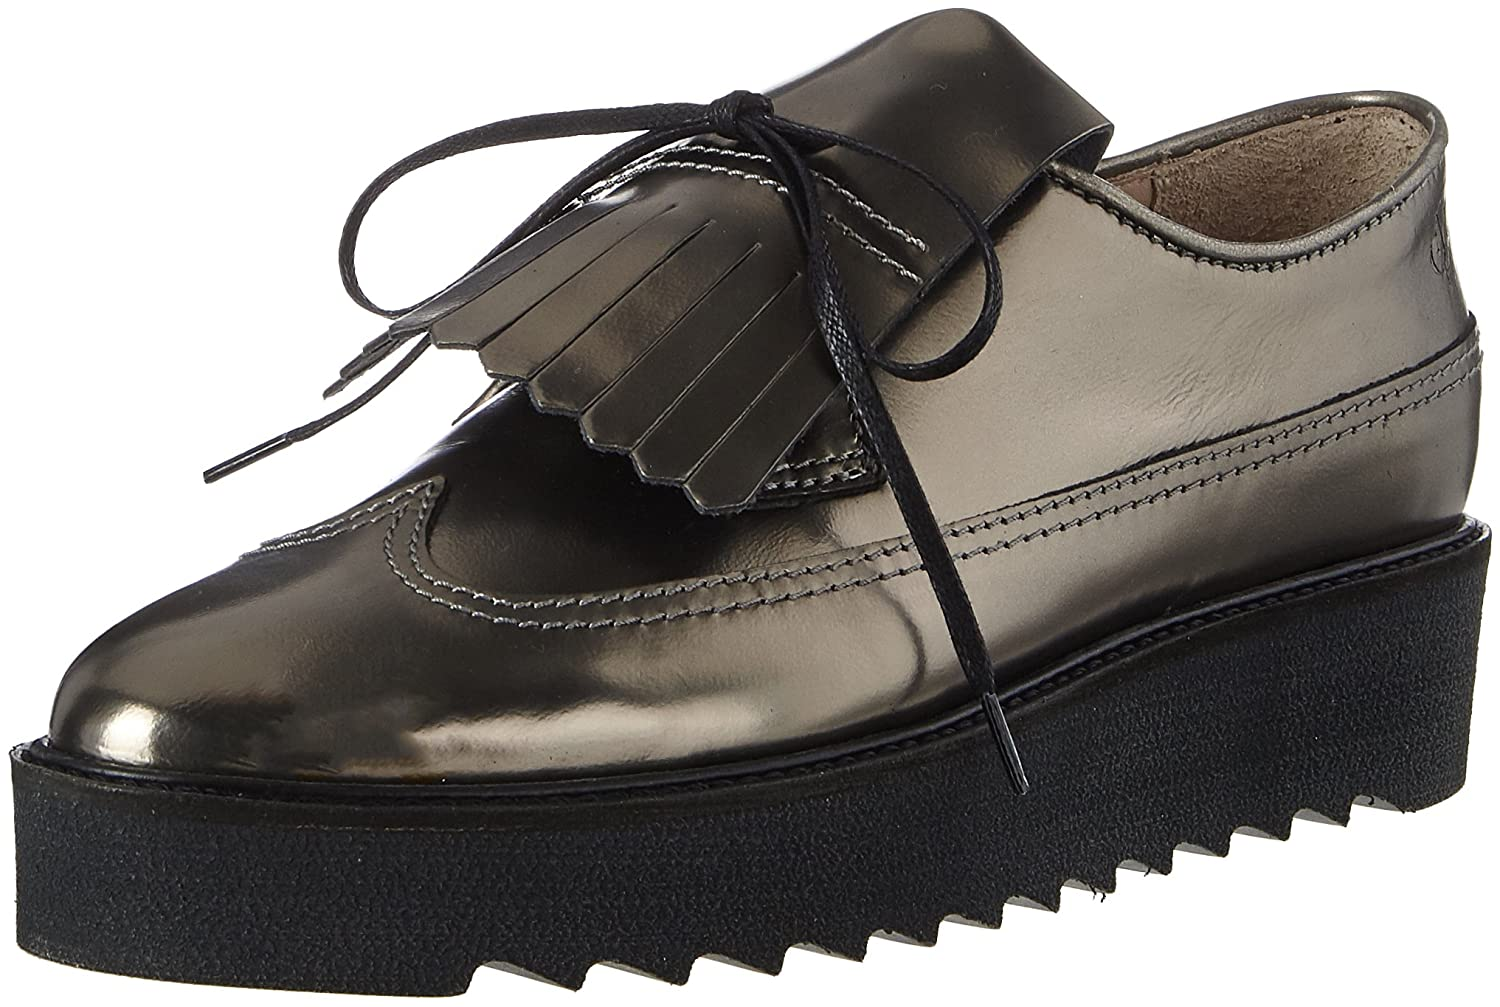 argent (Gunmetal) Marc O'Polo Lace Up chaussures 70814243402102, Mocassins Femme